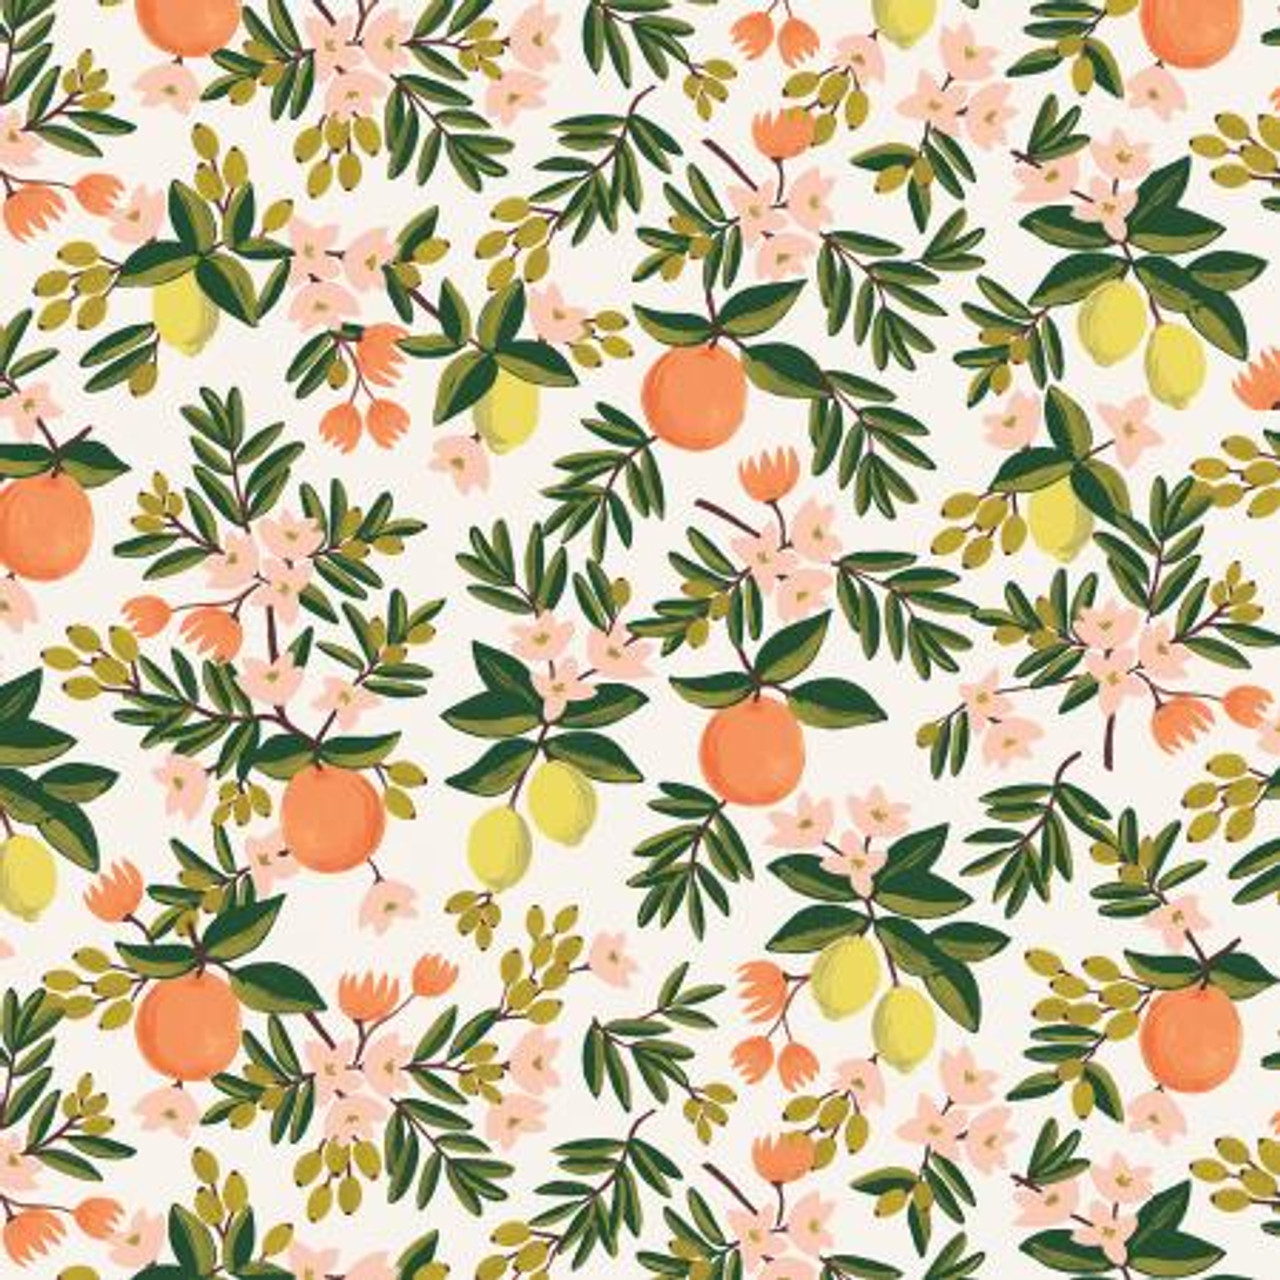 """QUILTERS CANDY, GINGHAM QUILT Kit in WARP and WEFT Ruby Star Society Orange 55"""" x 65"""" (140 x 165 cm)"""